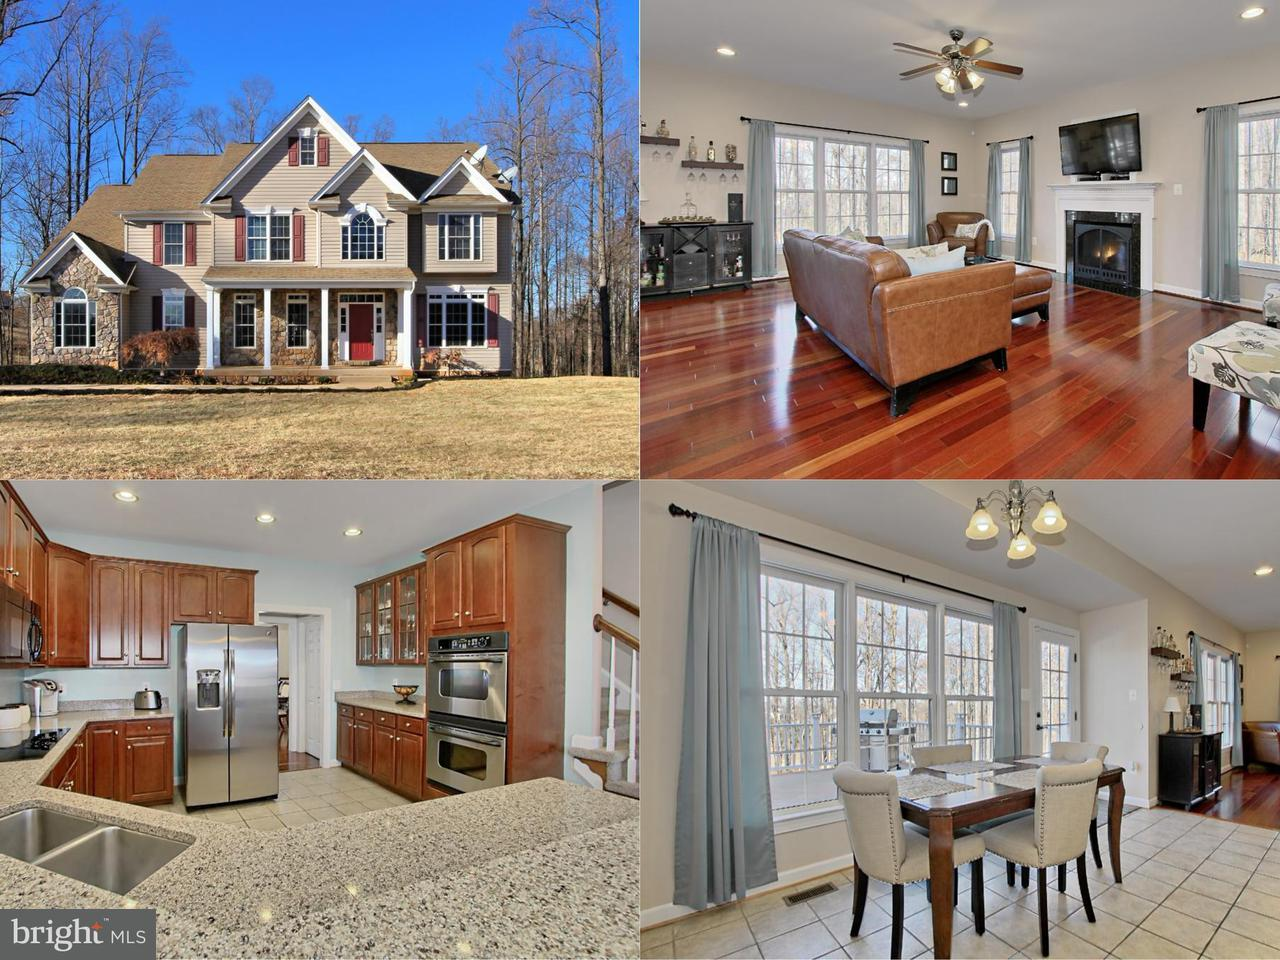 Single Family Home for Sale at 17107 Reid Hill Drive 17107 Reid Hill Drive Culpeper, Virginia 22701 United States